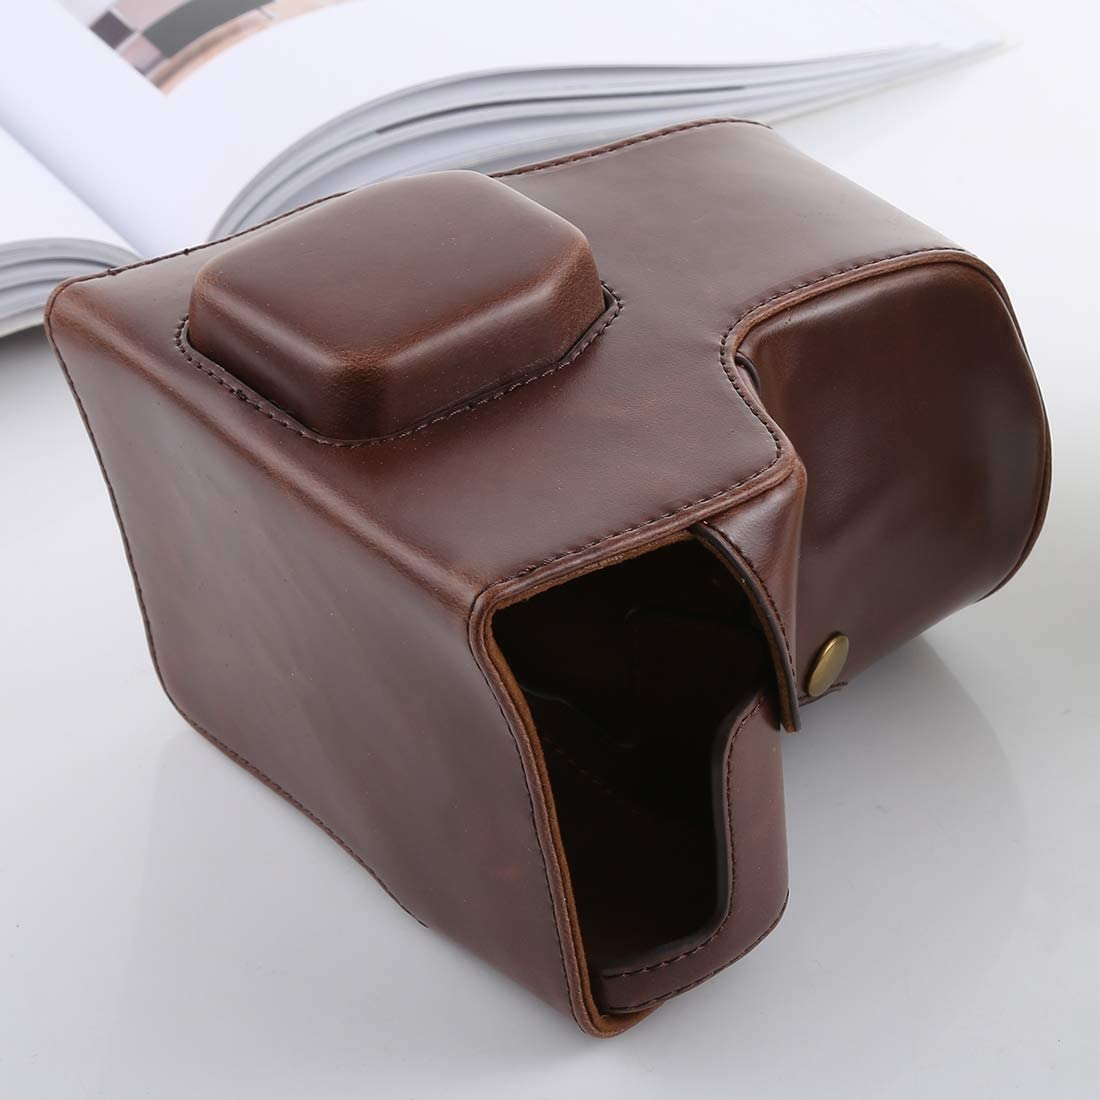 Full Body Camera PU Leather Case Bag with Strap for FUJIFILM X-T3 Durable Color : Coffee